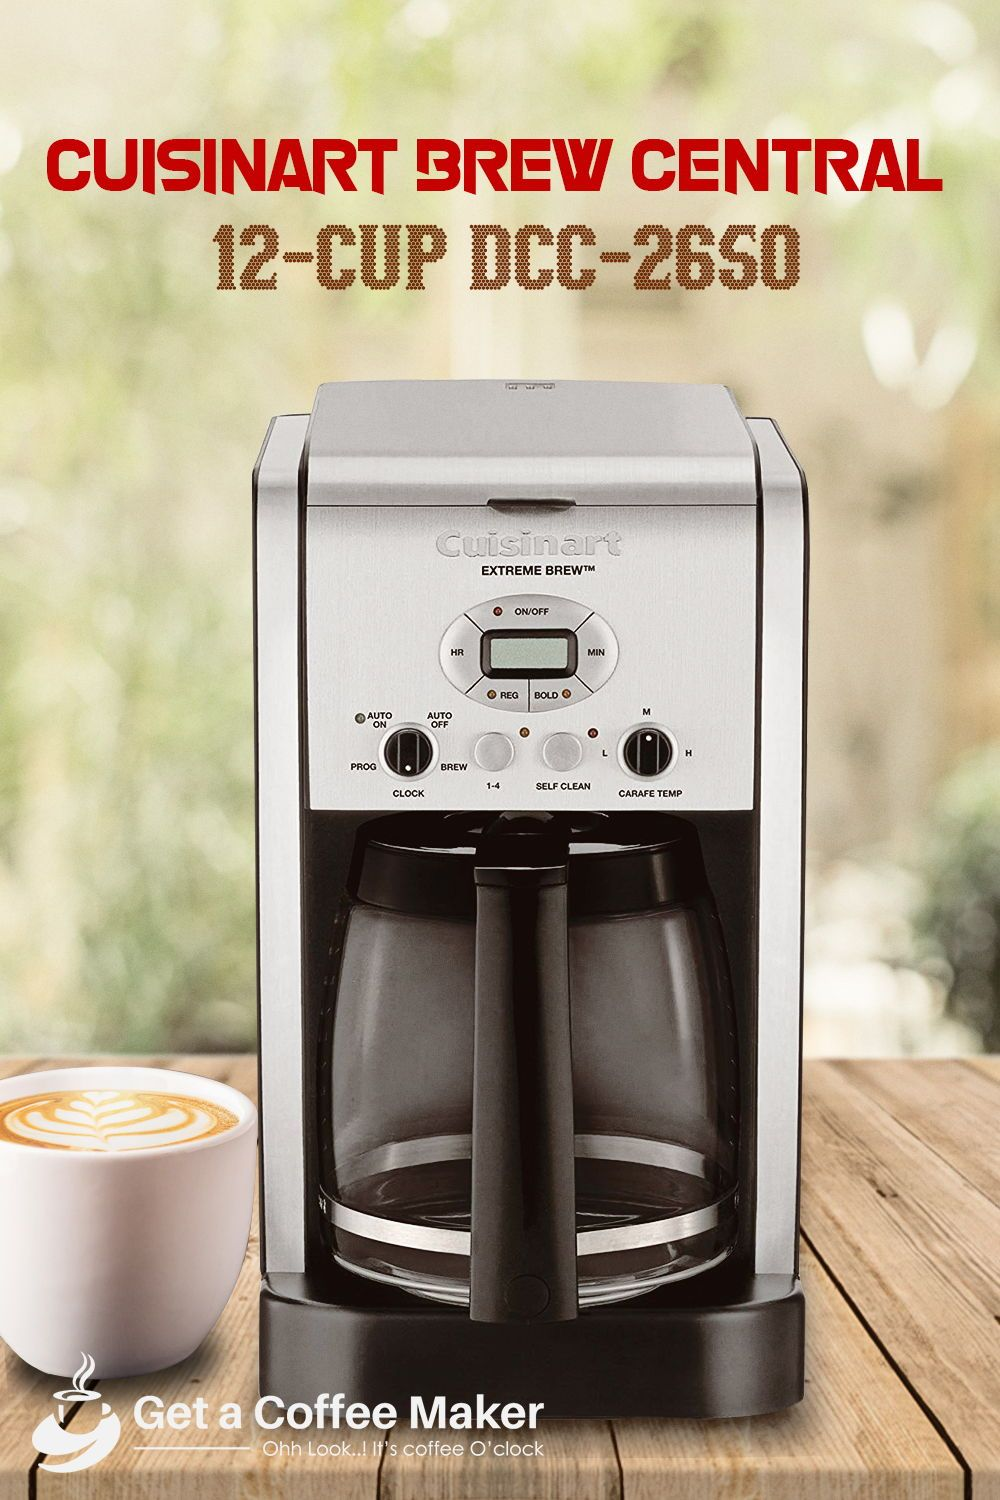 Top 10 Drip Coffee Makers Feb 2020 Reviews Buyers Guide Coffee Maker Best Drip Coffee Maker Drip Coffee